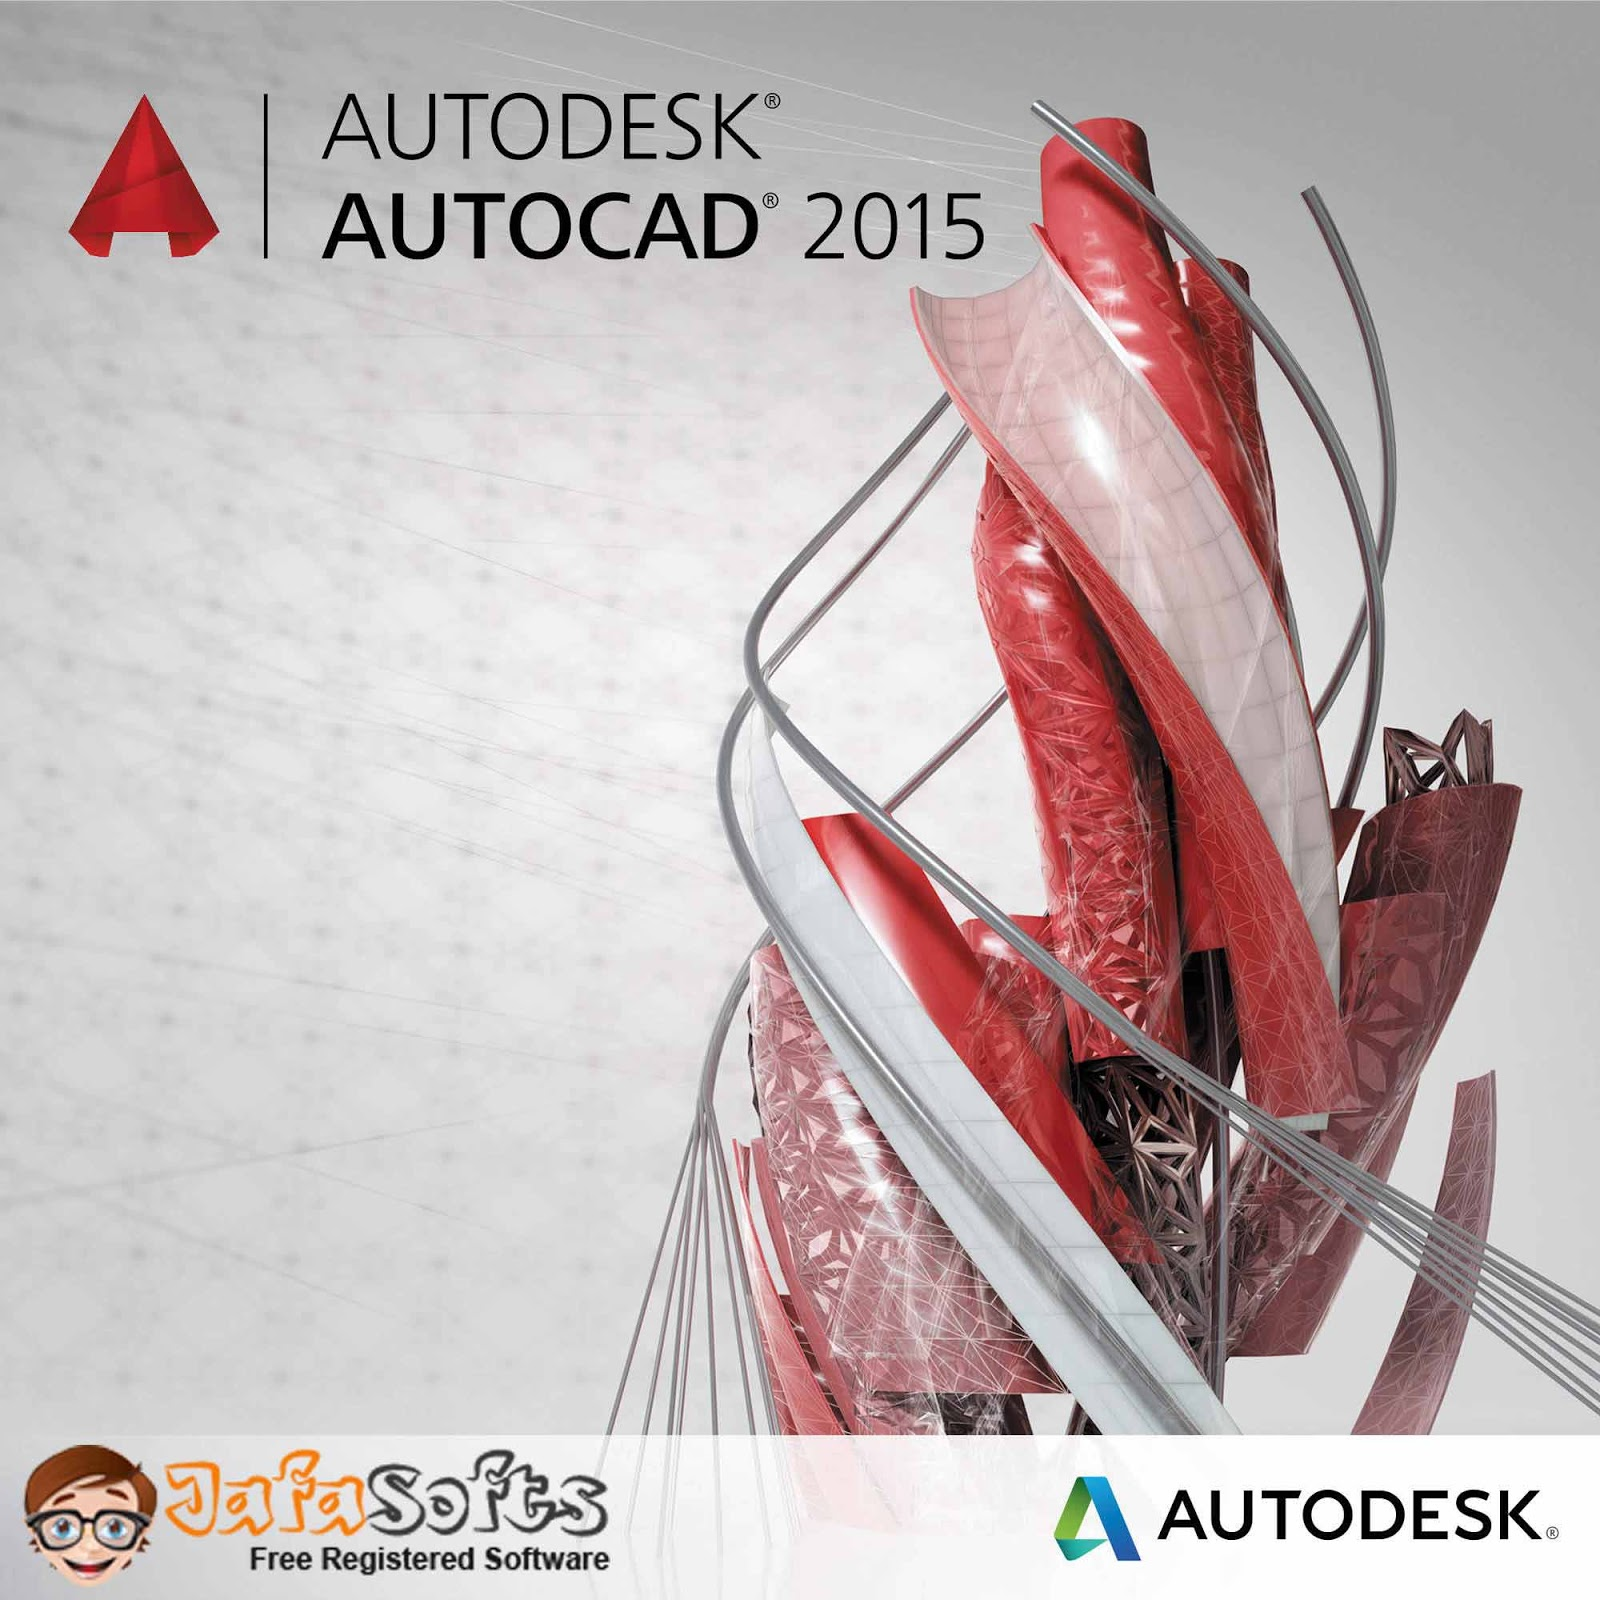 Autocad mac now available for download (30-day free trial).